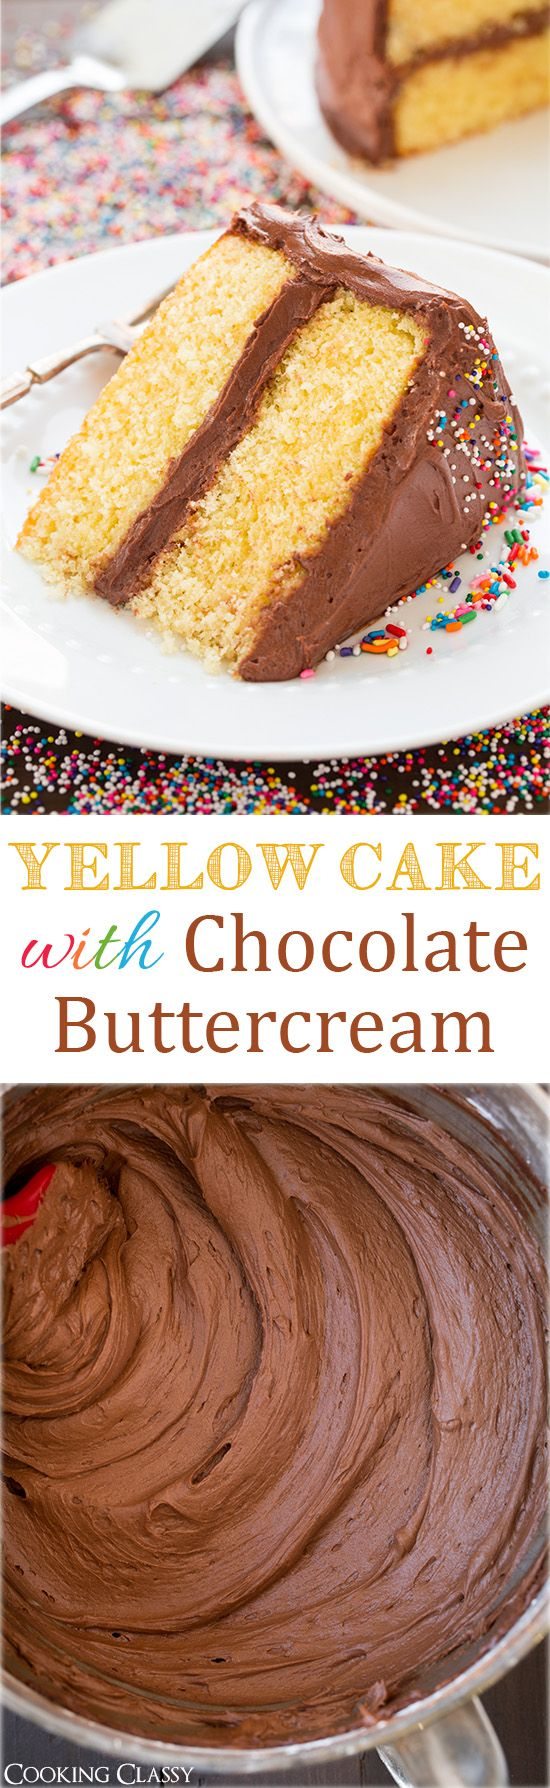 Yellow Cake with Chocolate Buttercream Frosting - this cake is soft and moist. It's so DELICIOUS! And the chocolate frosting is the BEST!